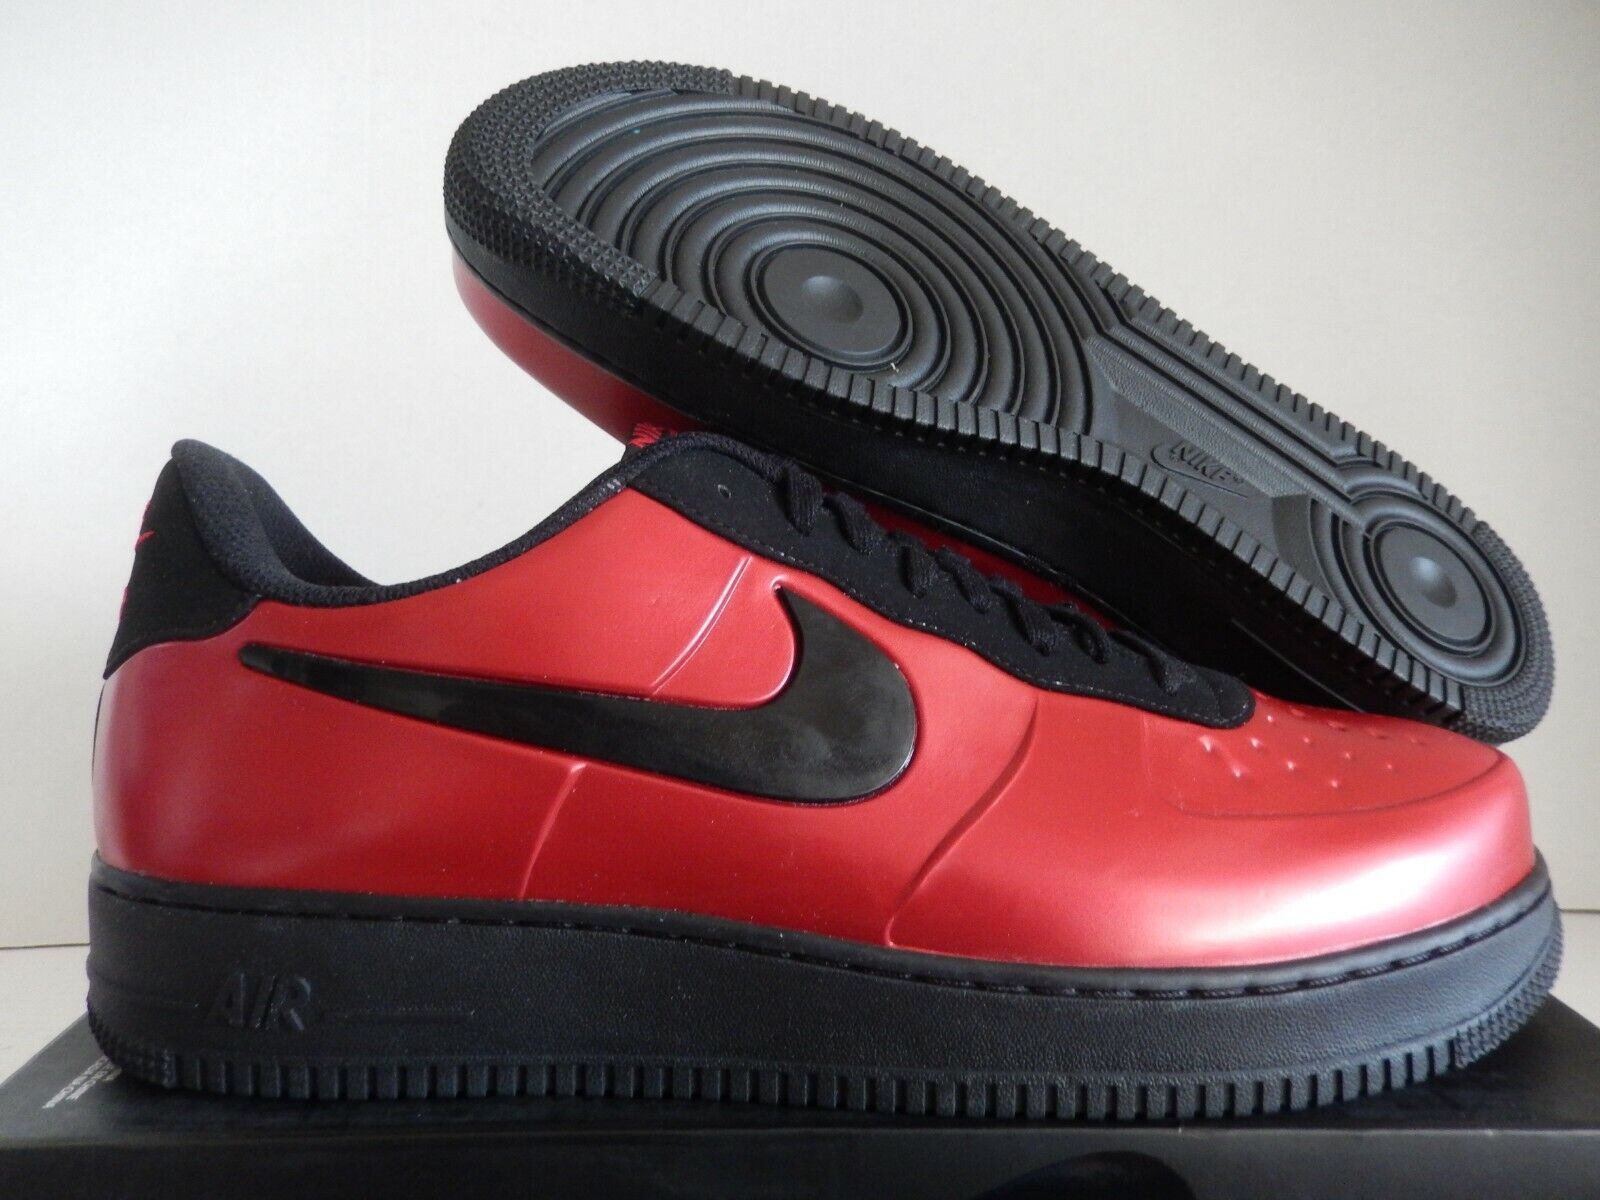 NIKE AF1 AIR FORCE 1 FOAMPOSITE PRO CUP GYM RED-BLACK SZ 14 [AJ3664-601]